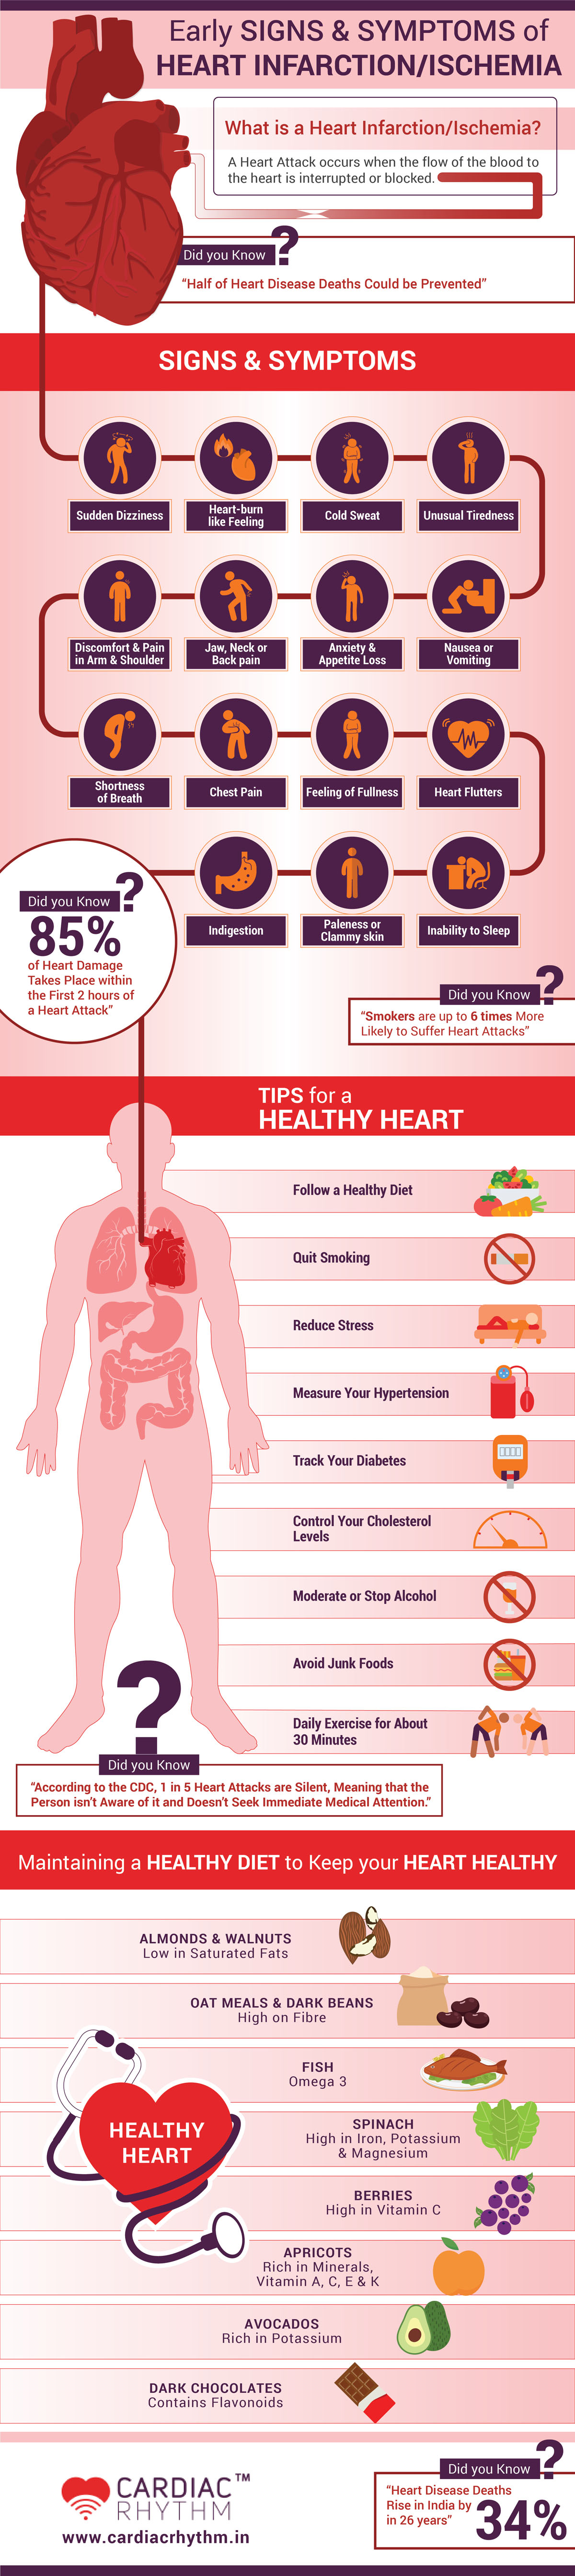 Early Signs & Symptoms of Heart Disease